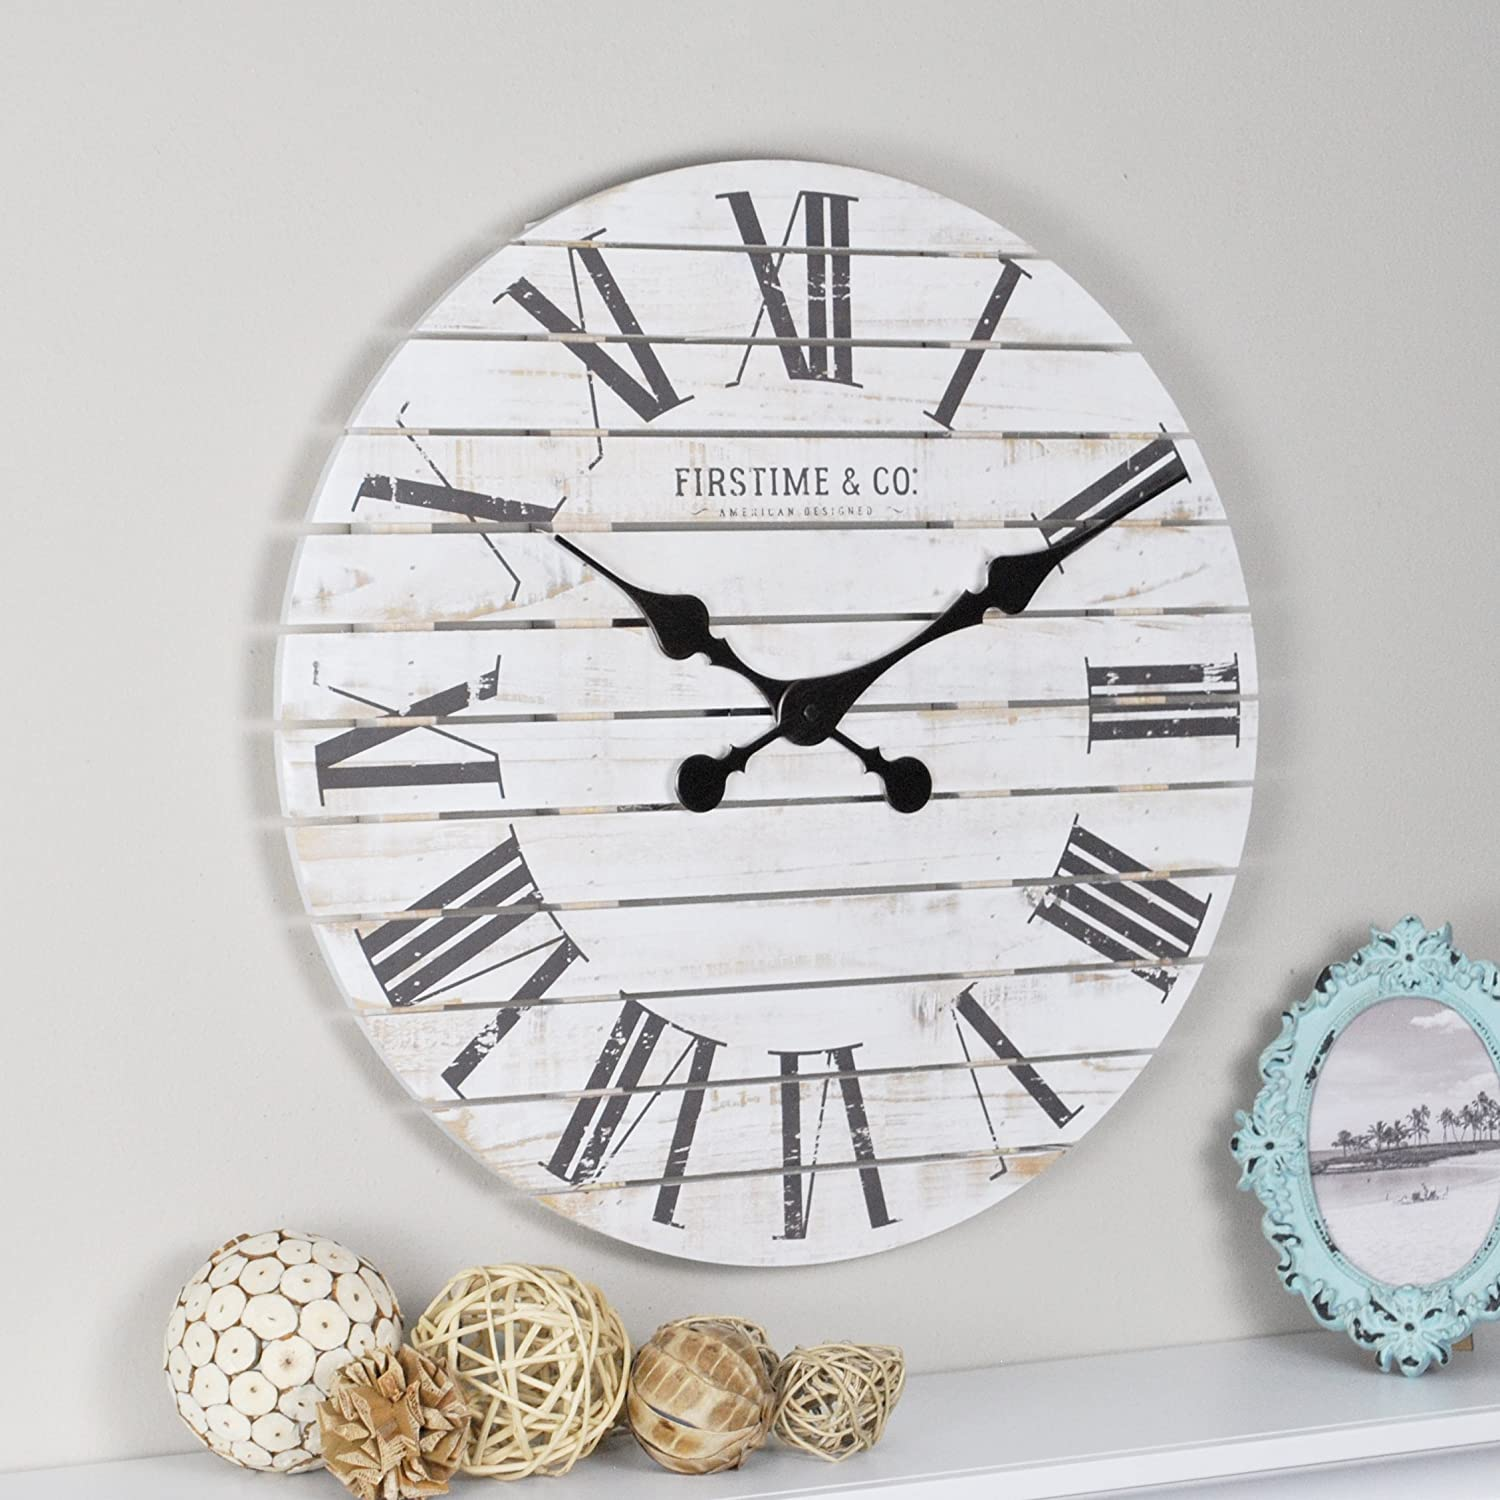 FirsTime 10066 Shiplap Wall Clock, White